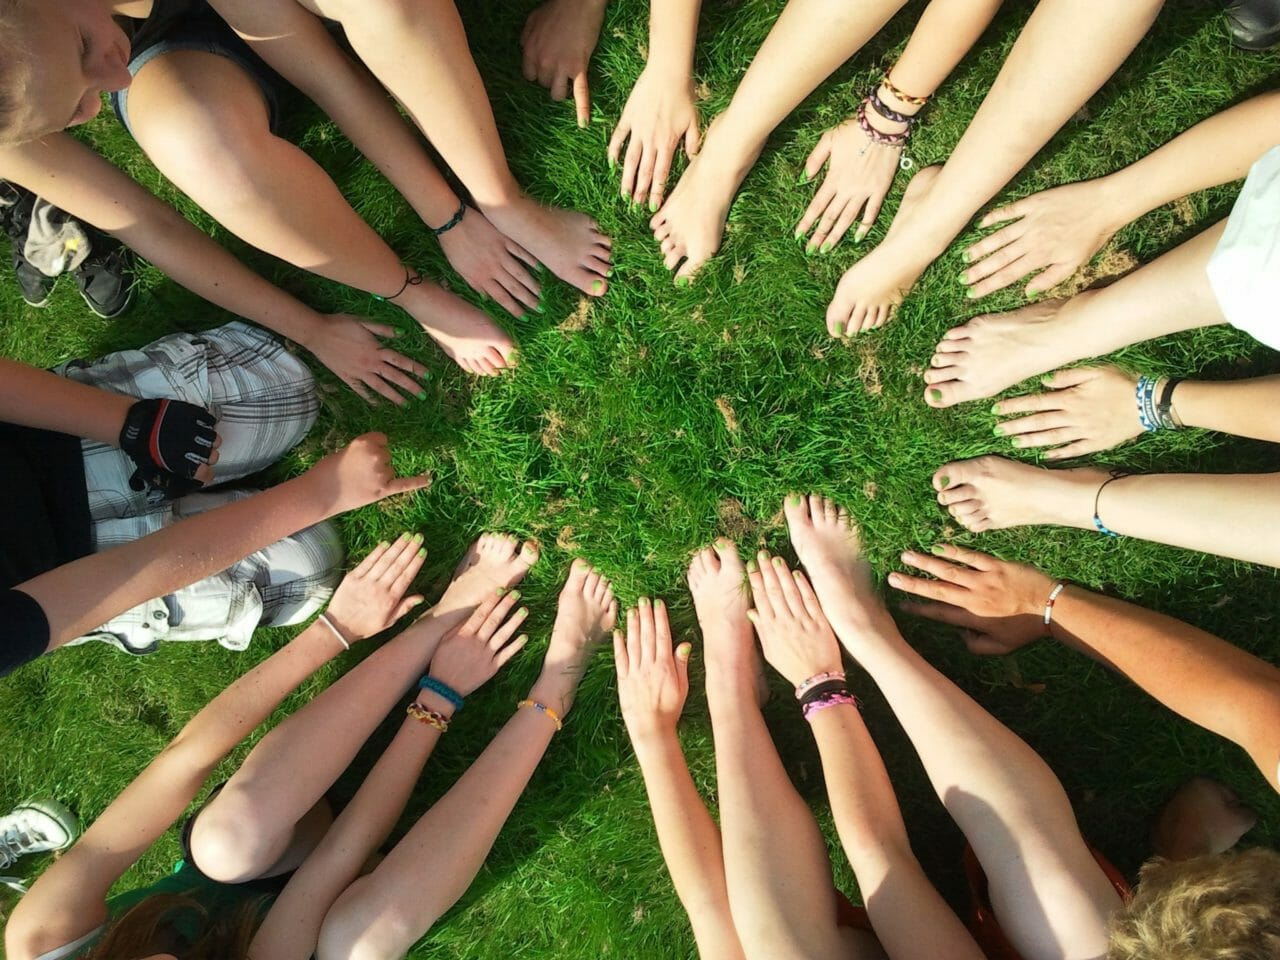 group of kids with hands and feet in circle